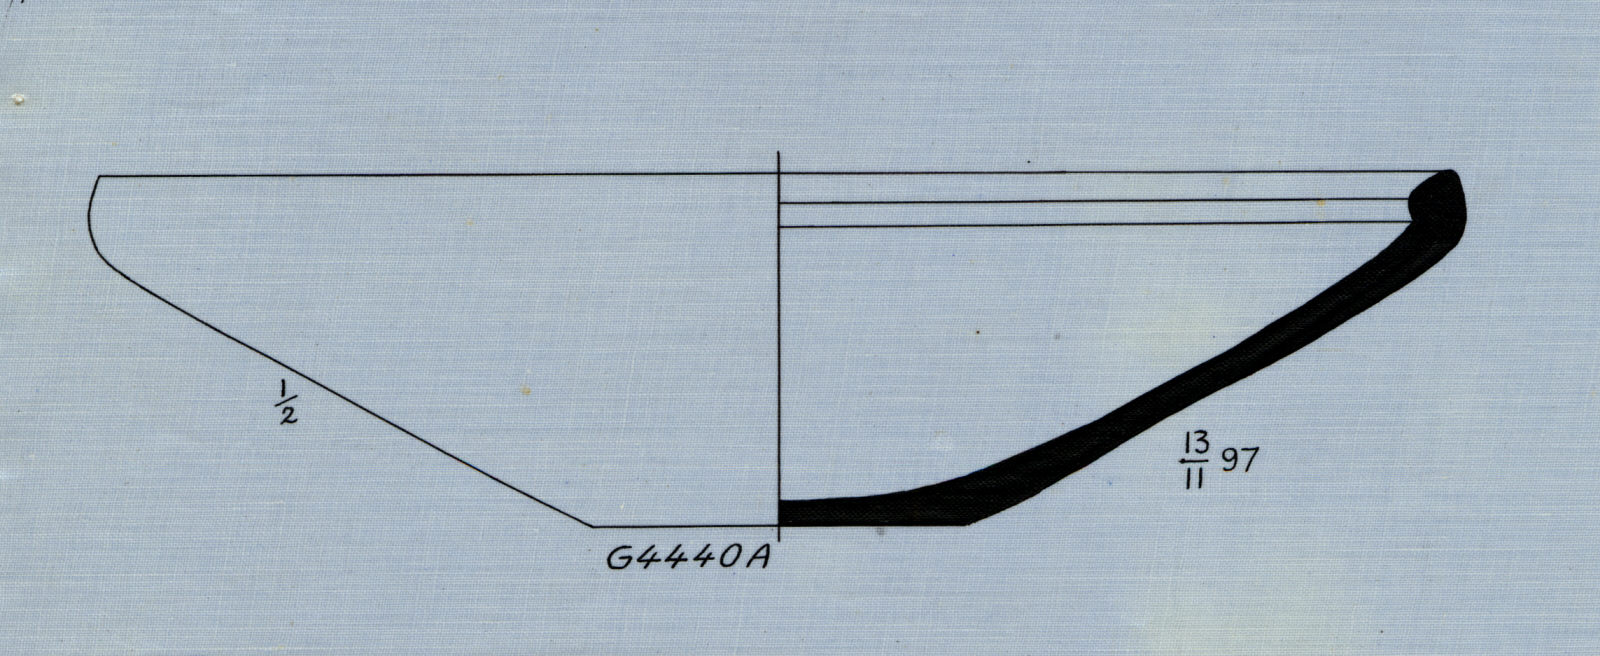 Drawings: G 4440, Shaft A: bowl, alabaster